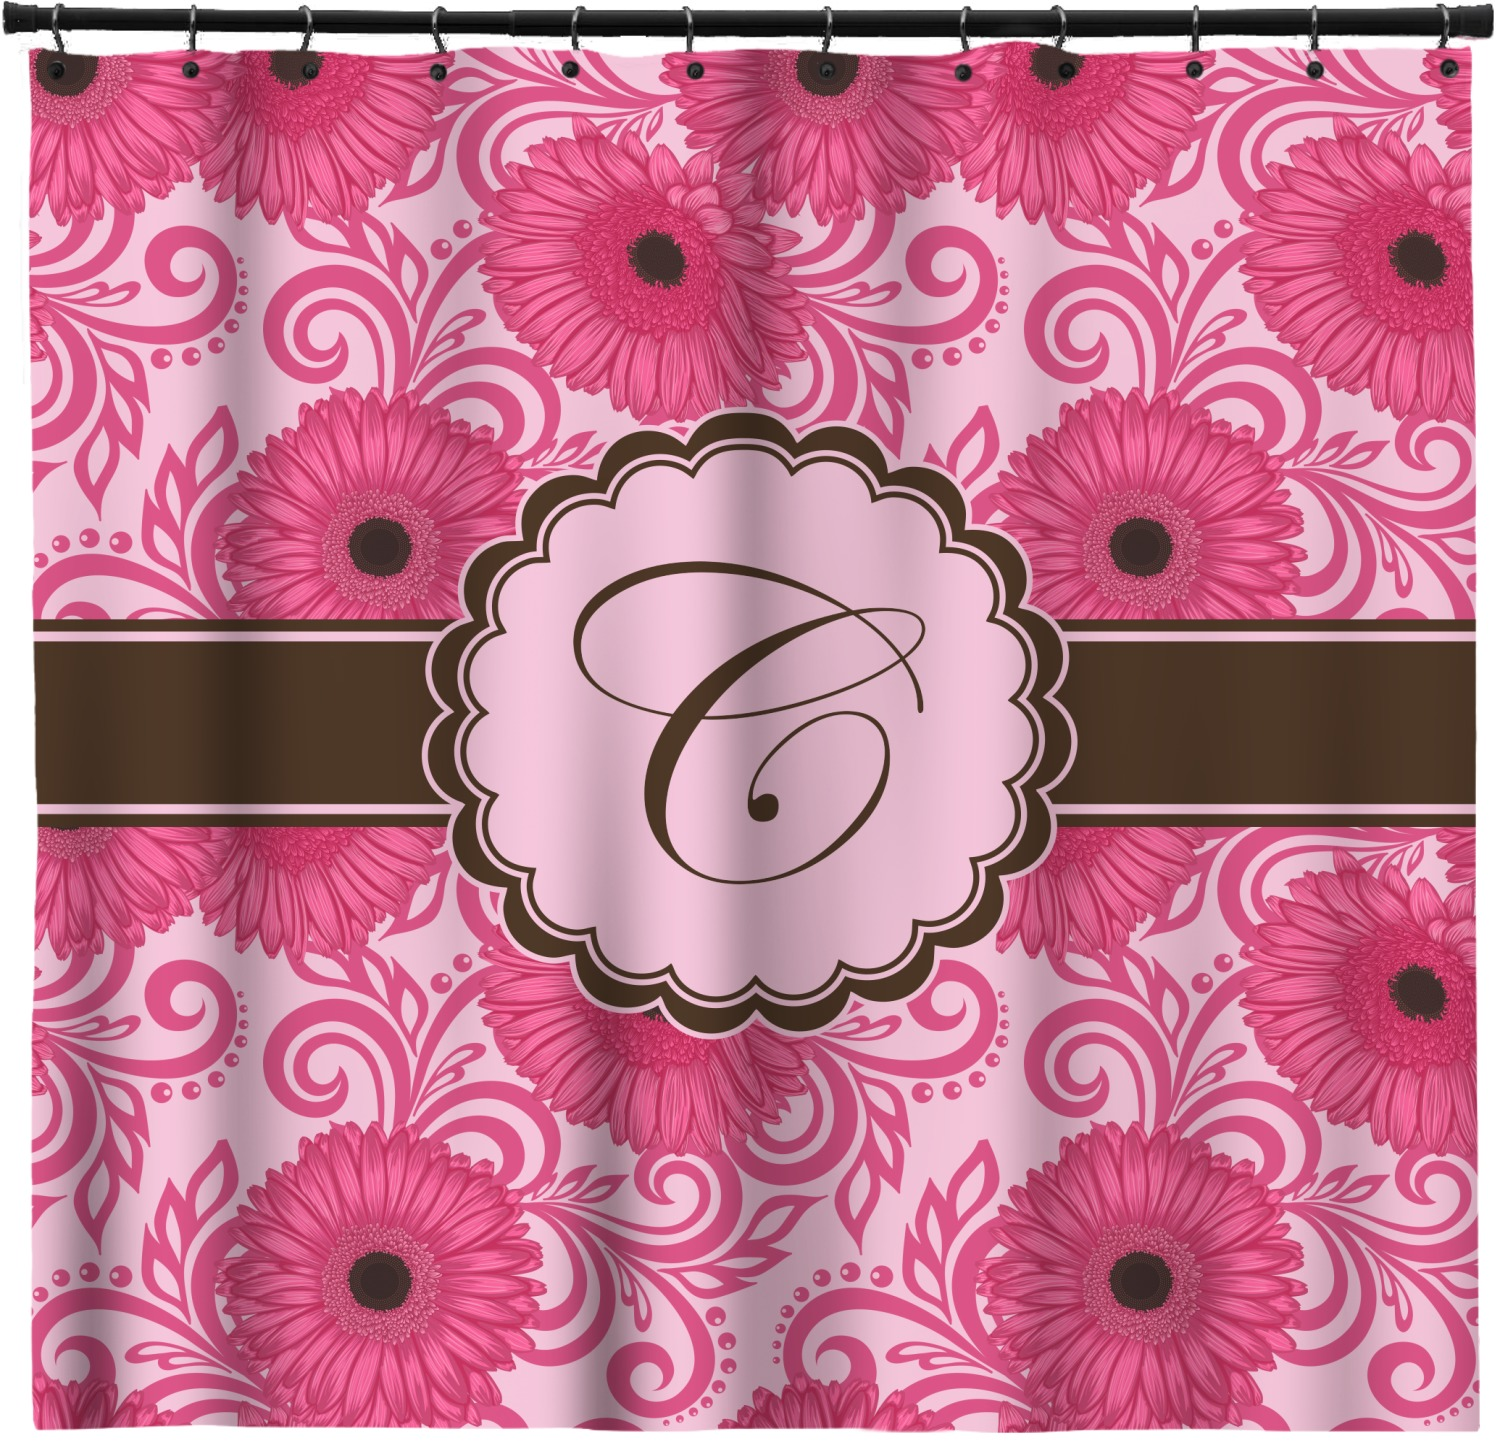 Gerbera Daisy Shower Curtain Personalized